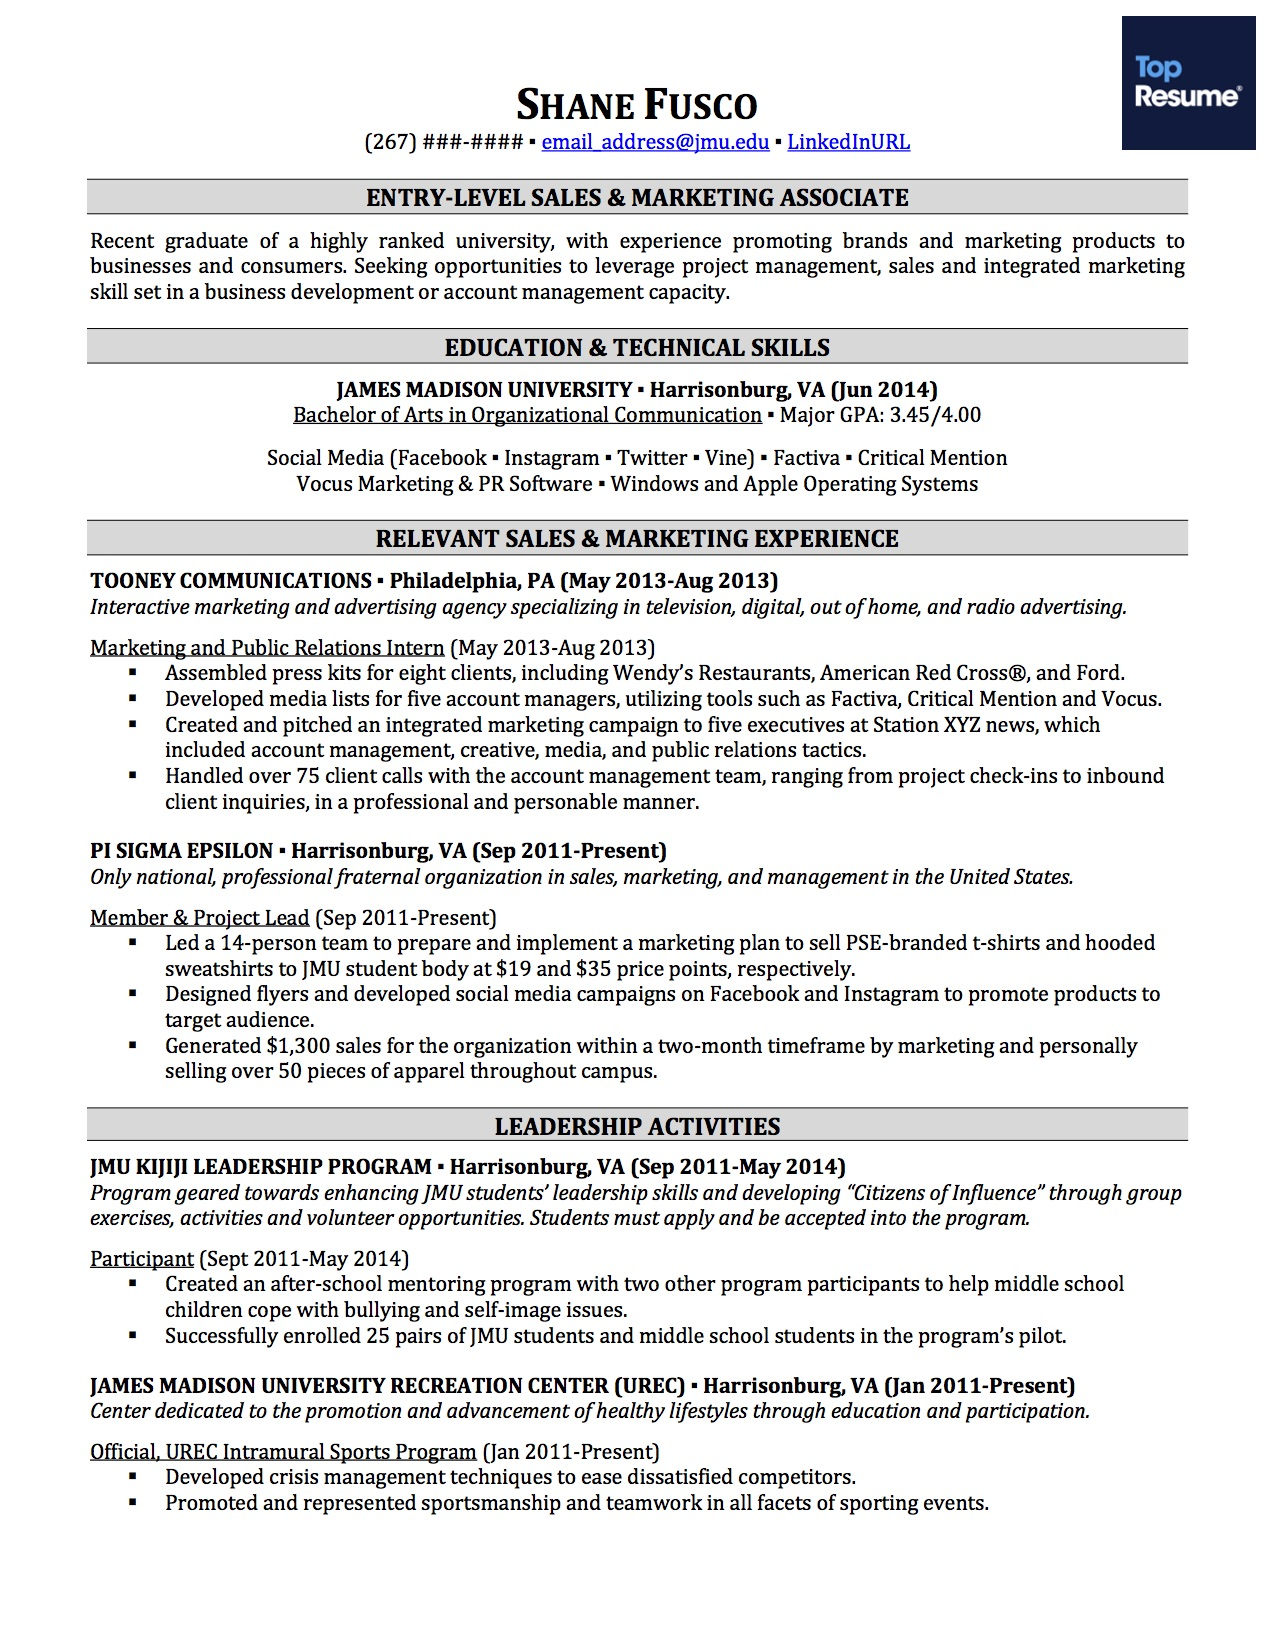 decide on a resume format - What Is The Best Resume Format